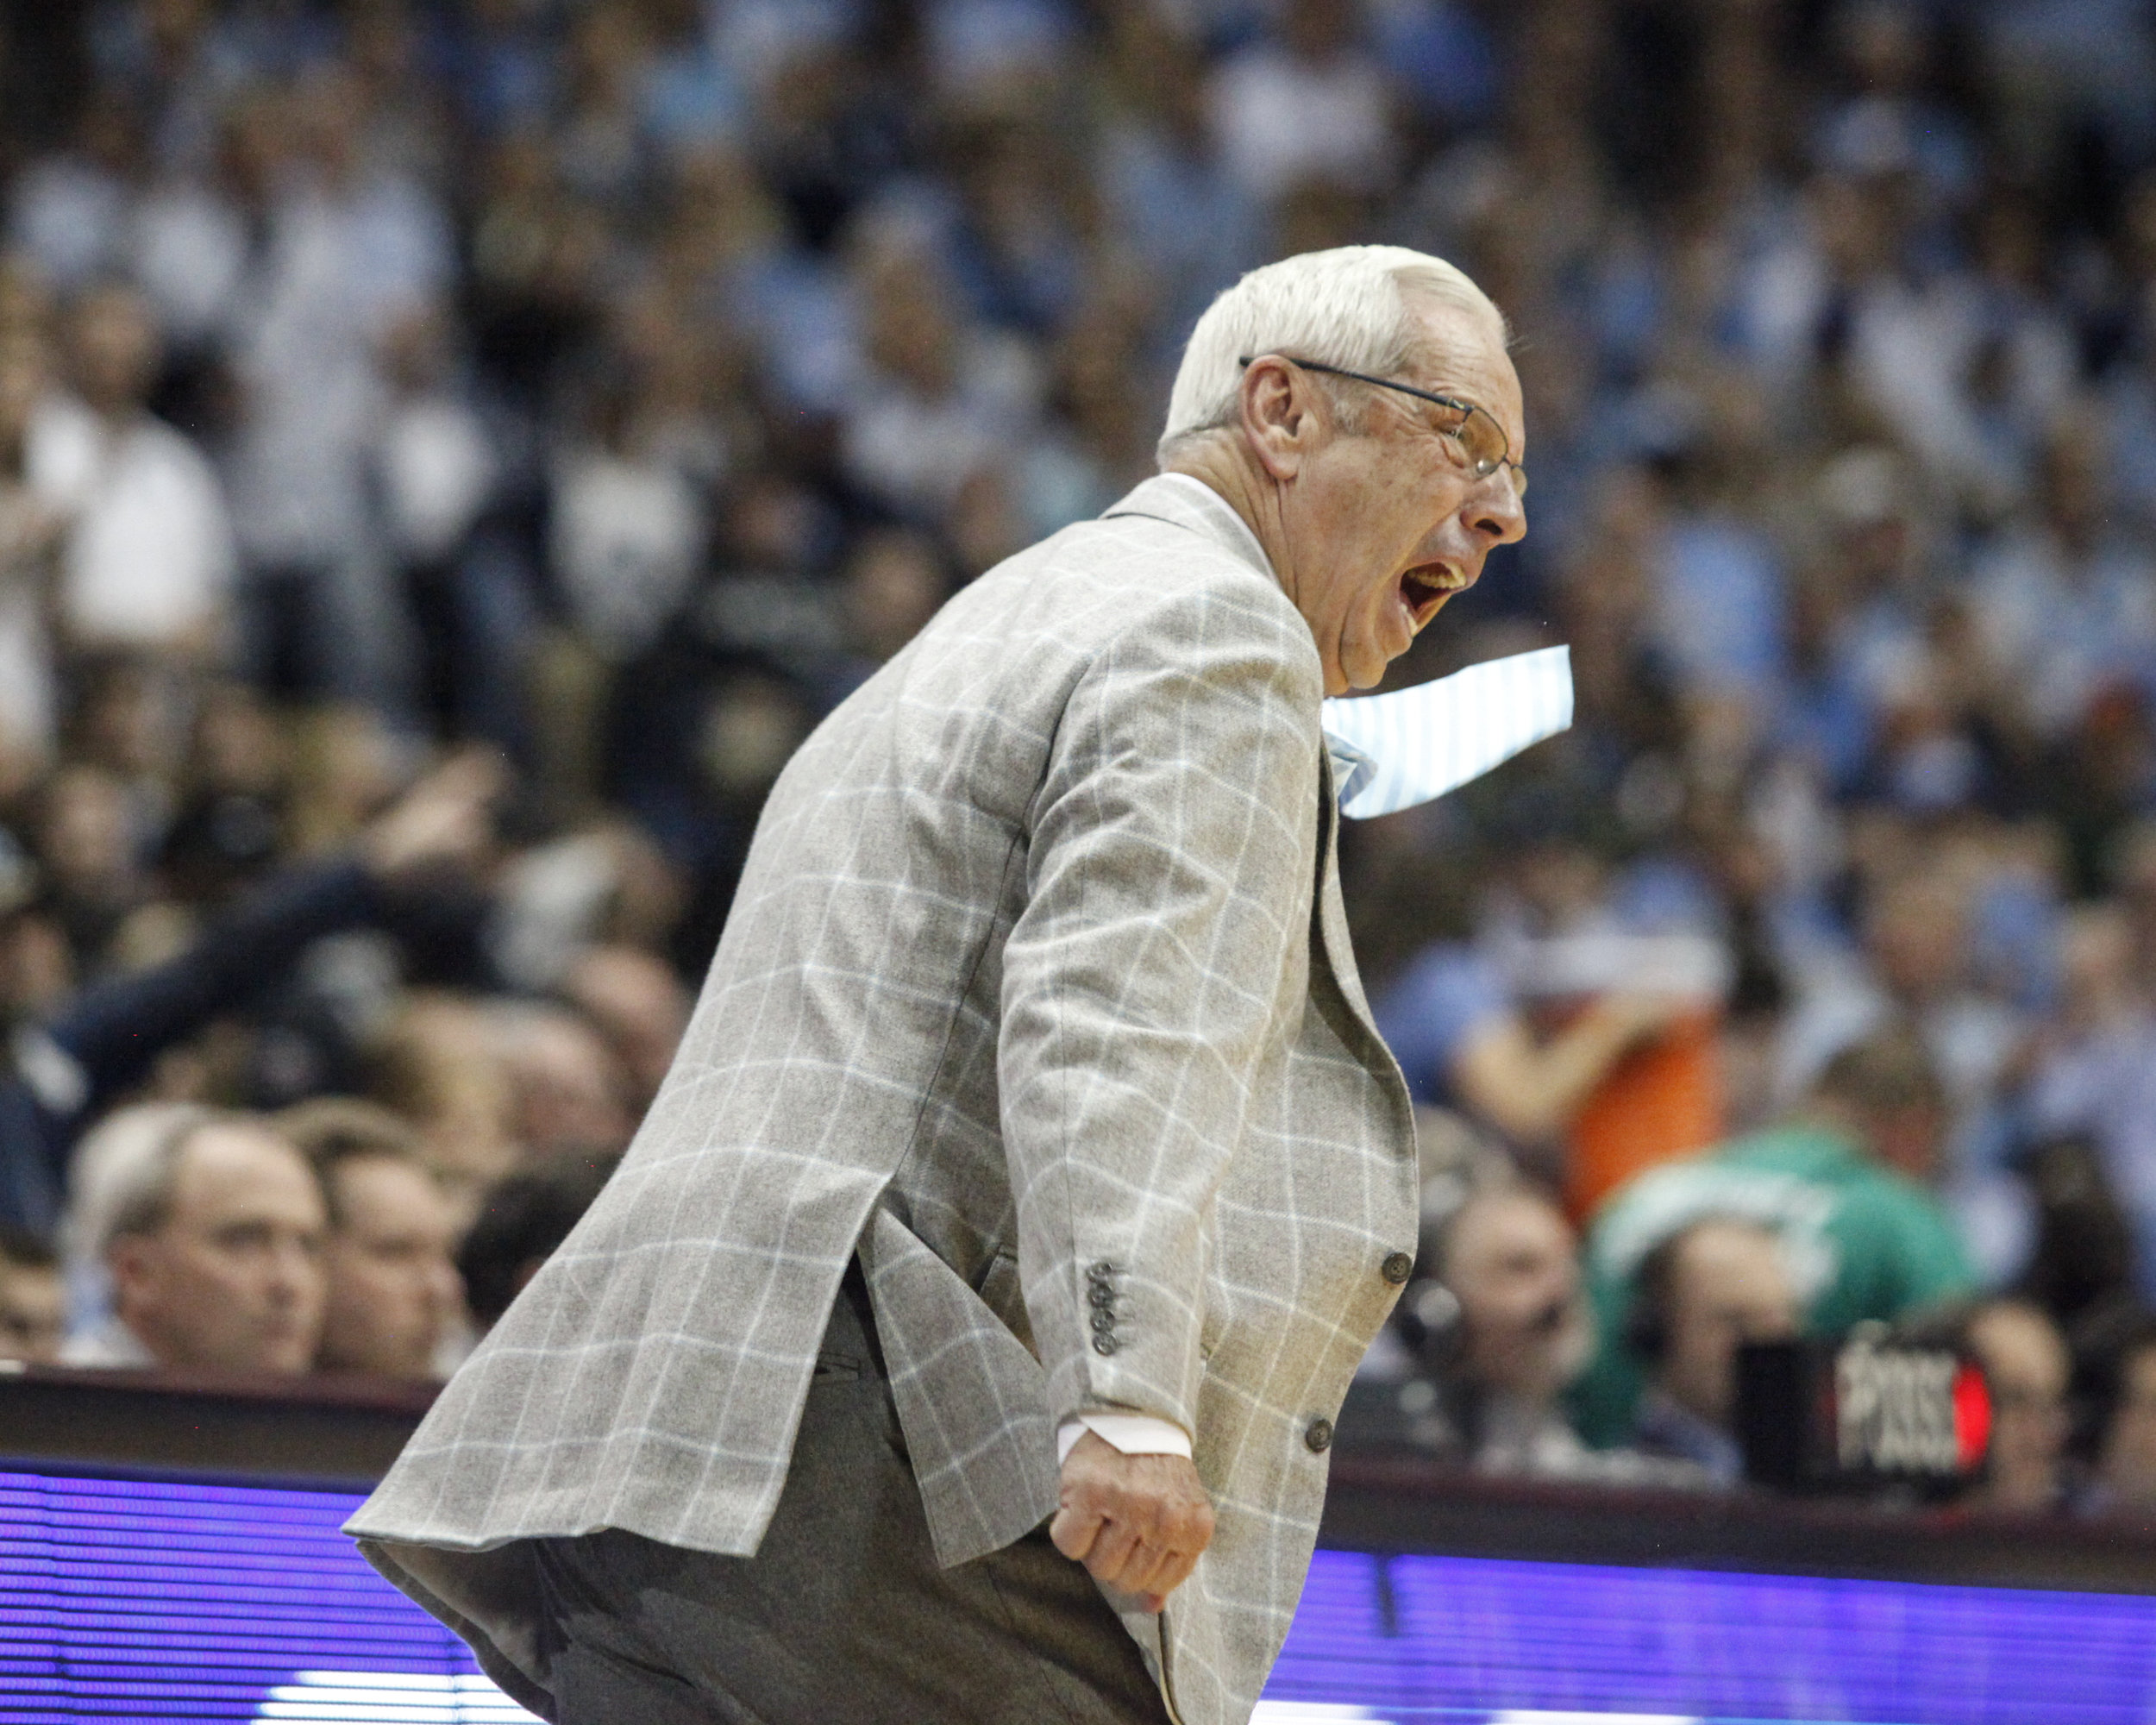 UNC head coach Roy Williams' tie flies as he stomps during the game at the Dean Smith Center.